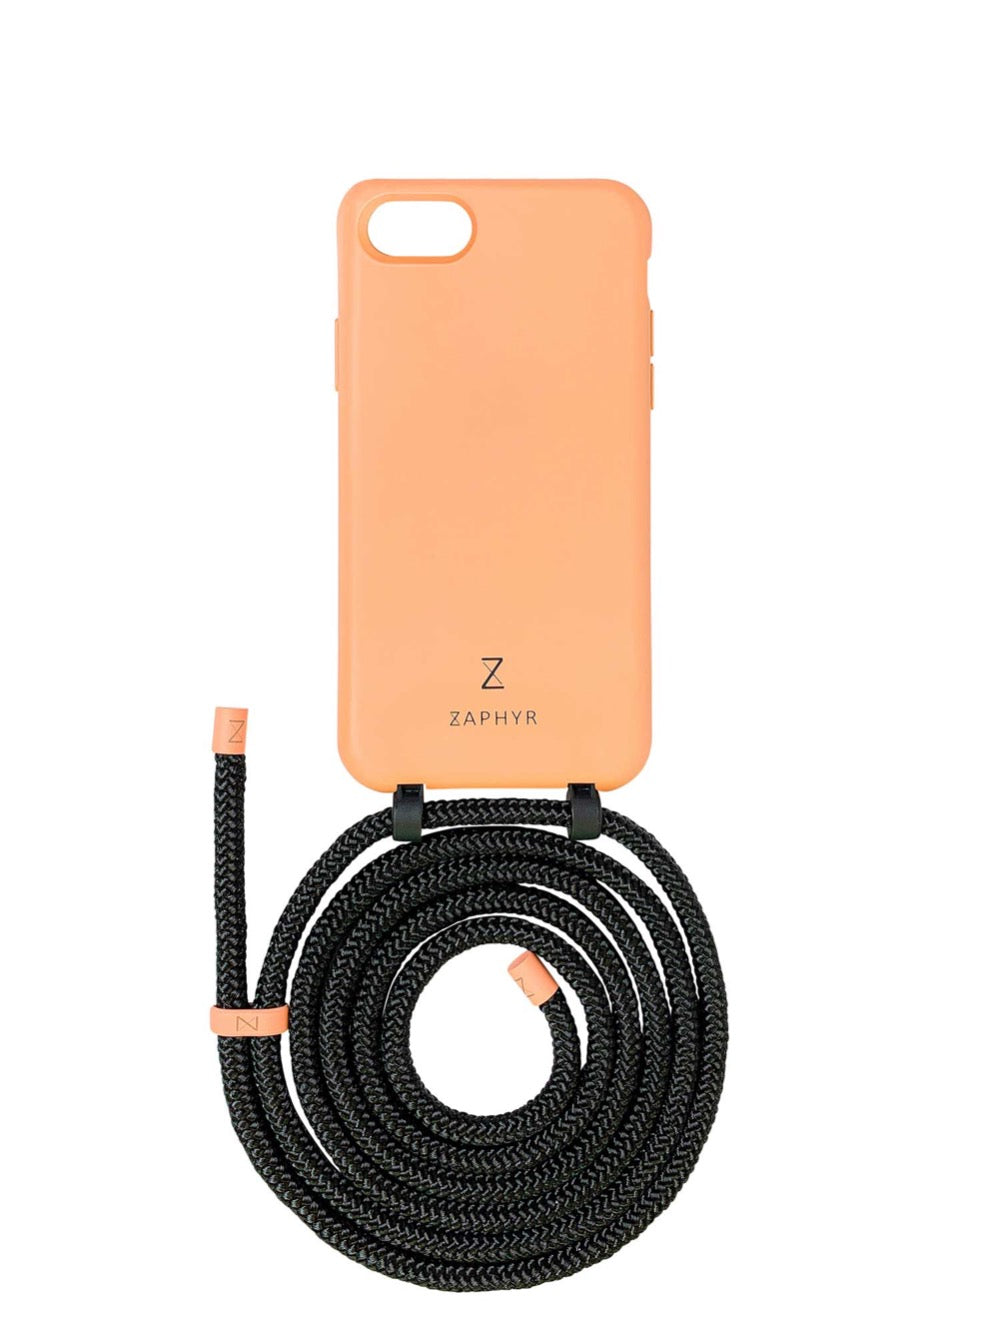 Zaphyr phone case apple iphone 7 / 8 / SE peach with strap, crossbody phone case